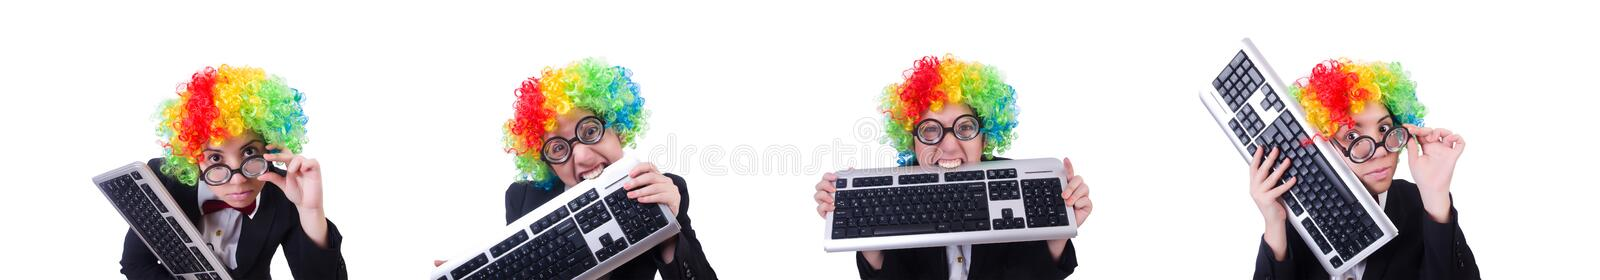 Funny clown with keyboard on white stock photos